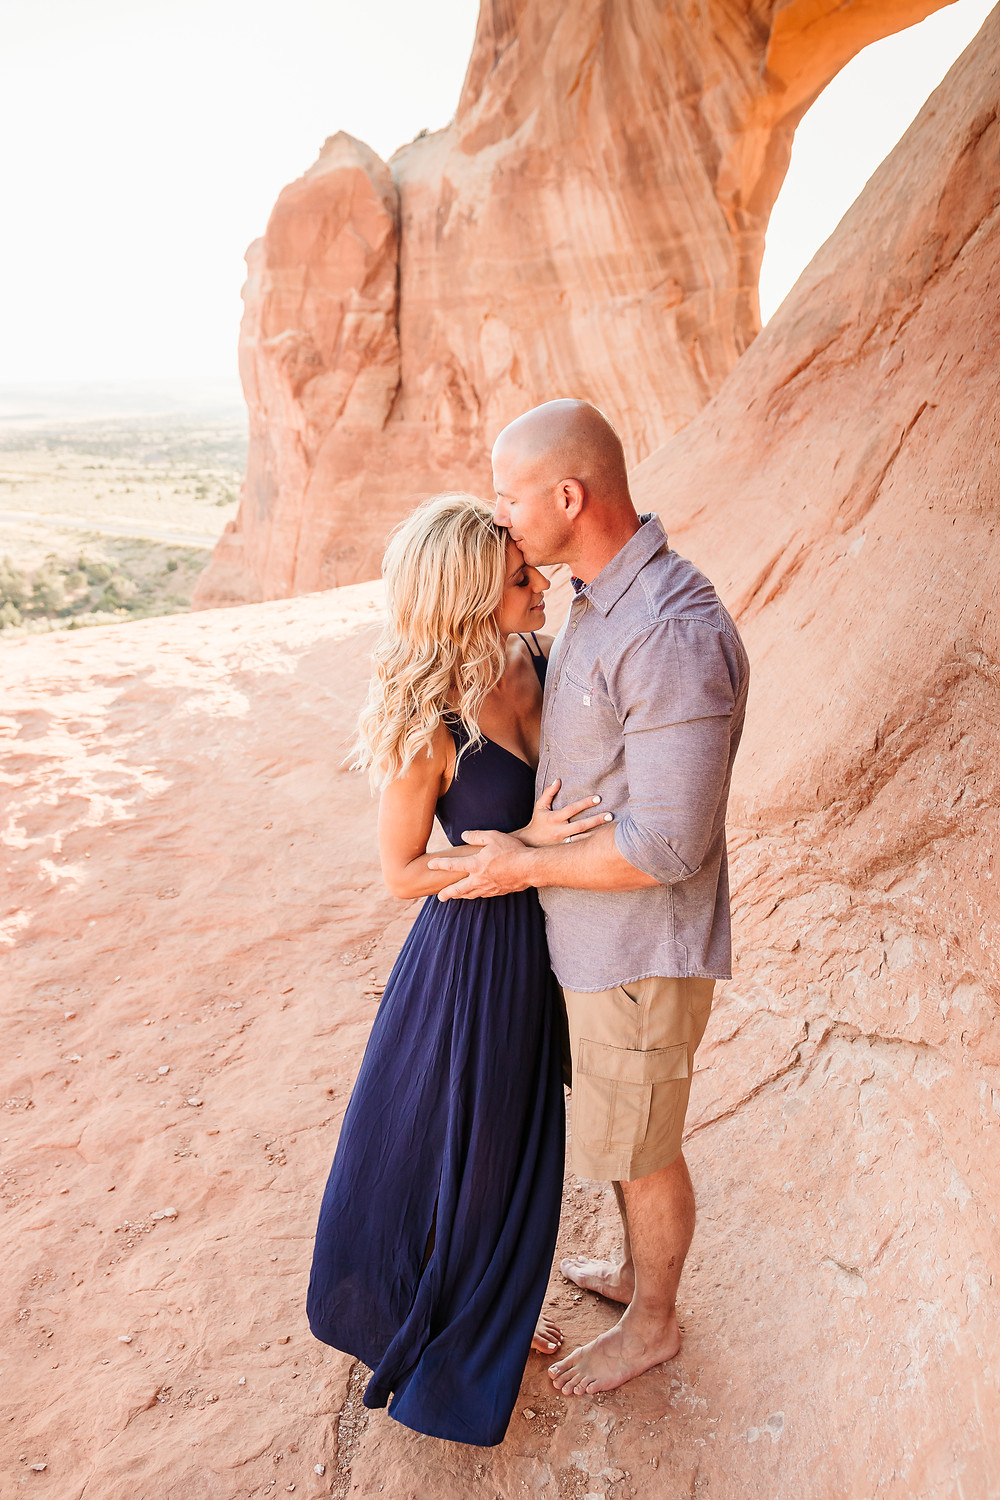 Moab Utah Wilson Arch romantic engagement navy maxi dress what to wear